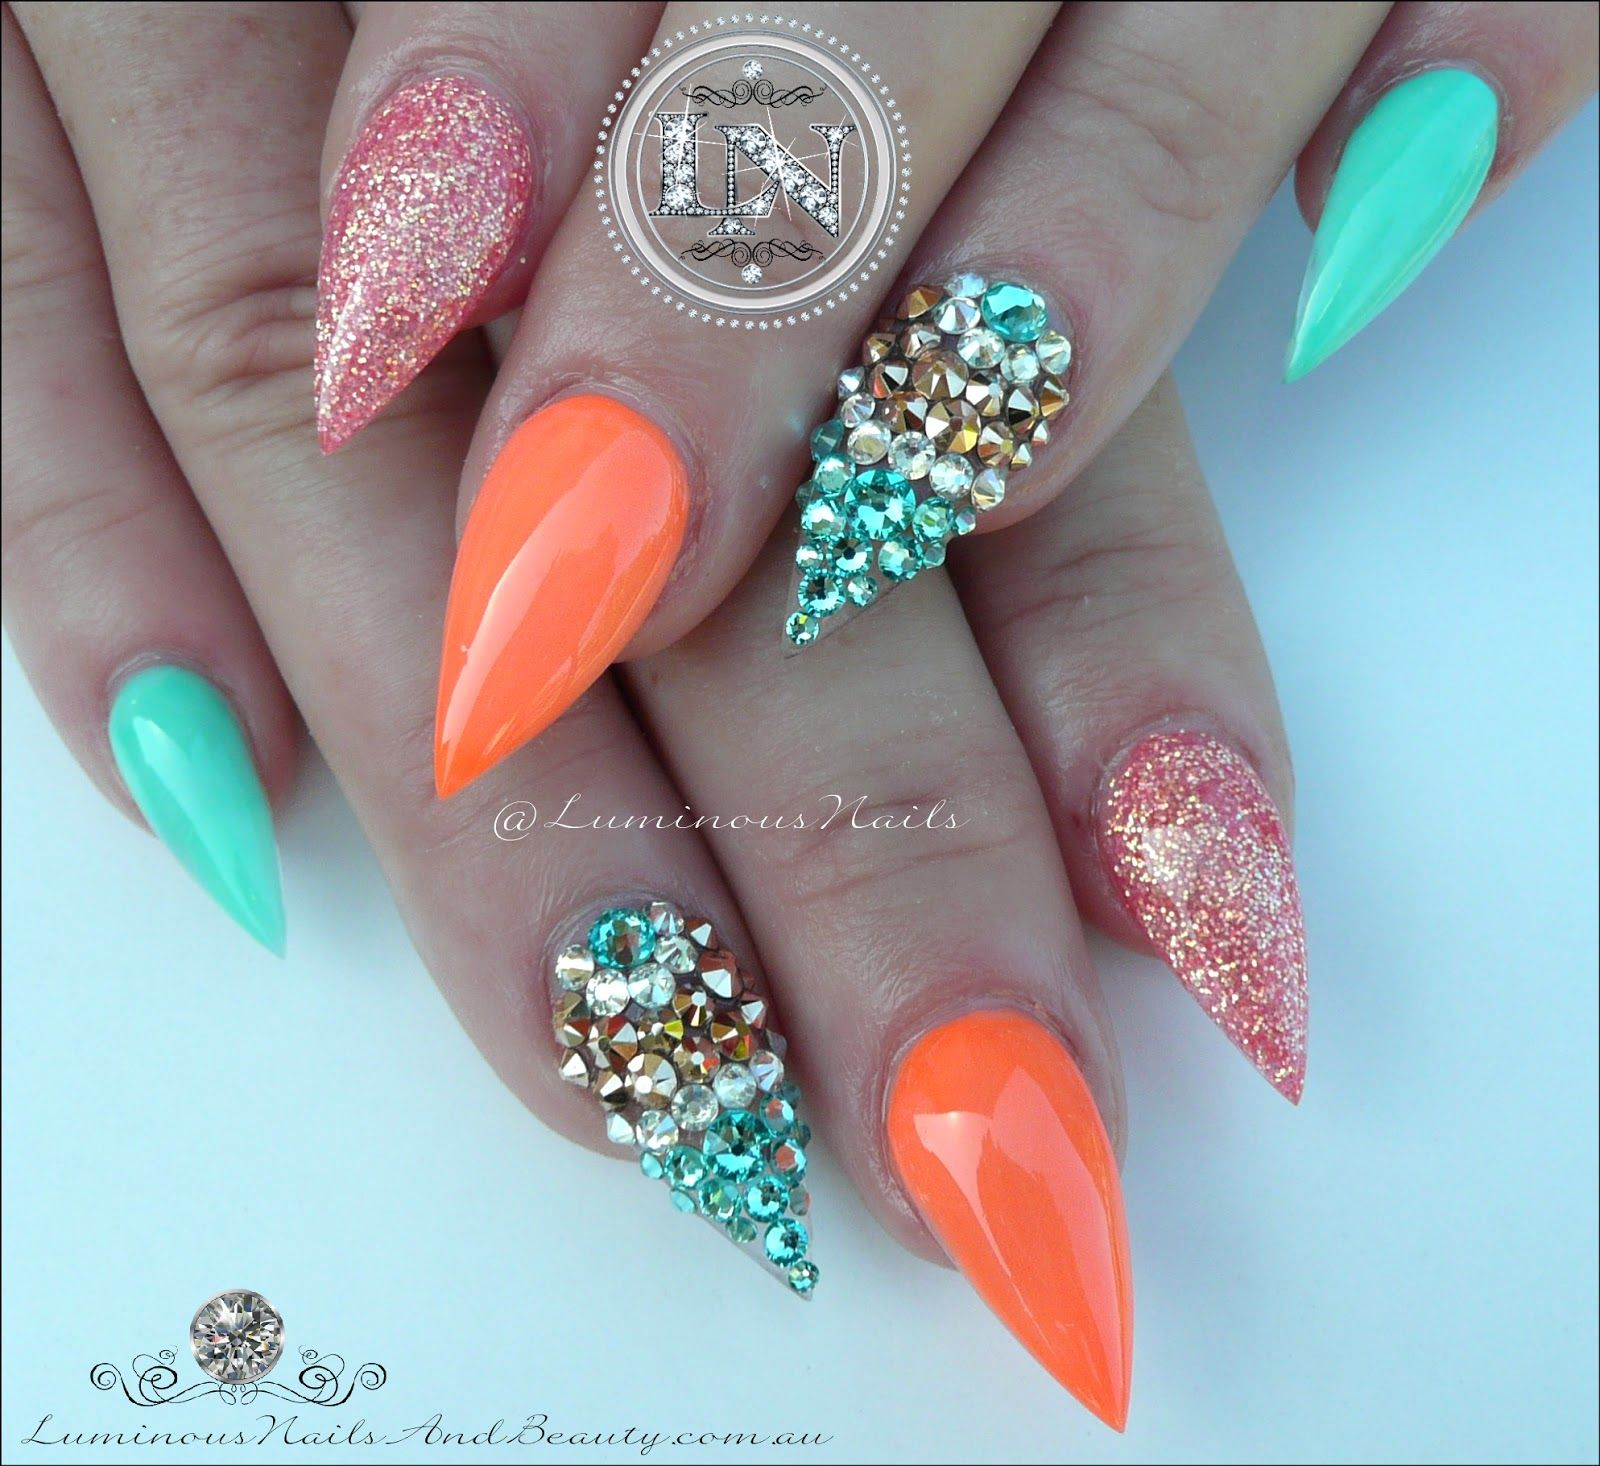 luminous nails: glamorous nails inspired@malishka702_nails